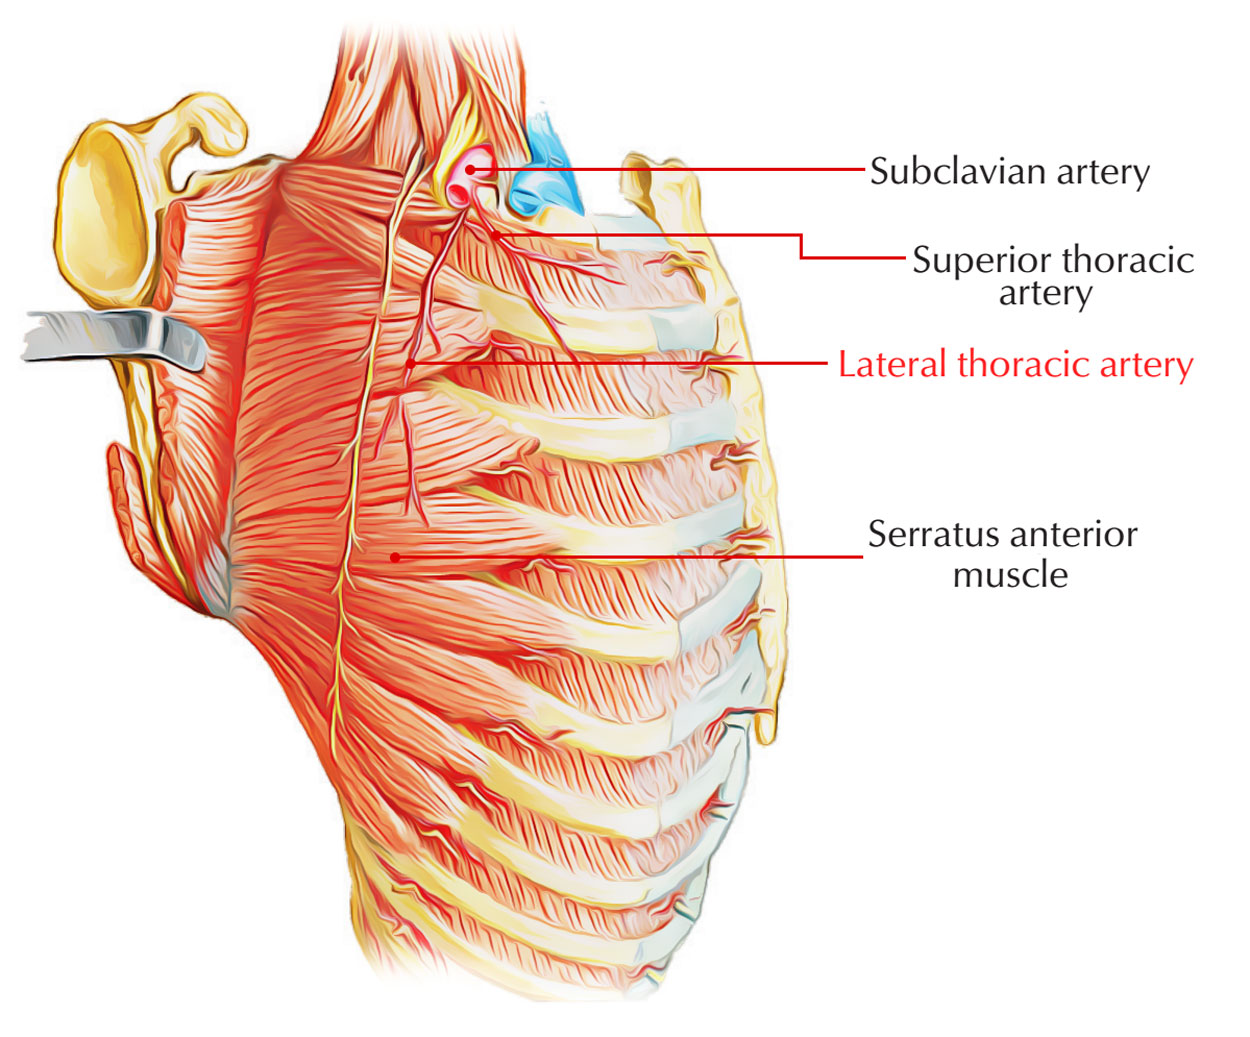 Lateral Thoracic Artery